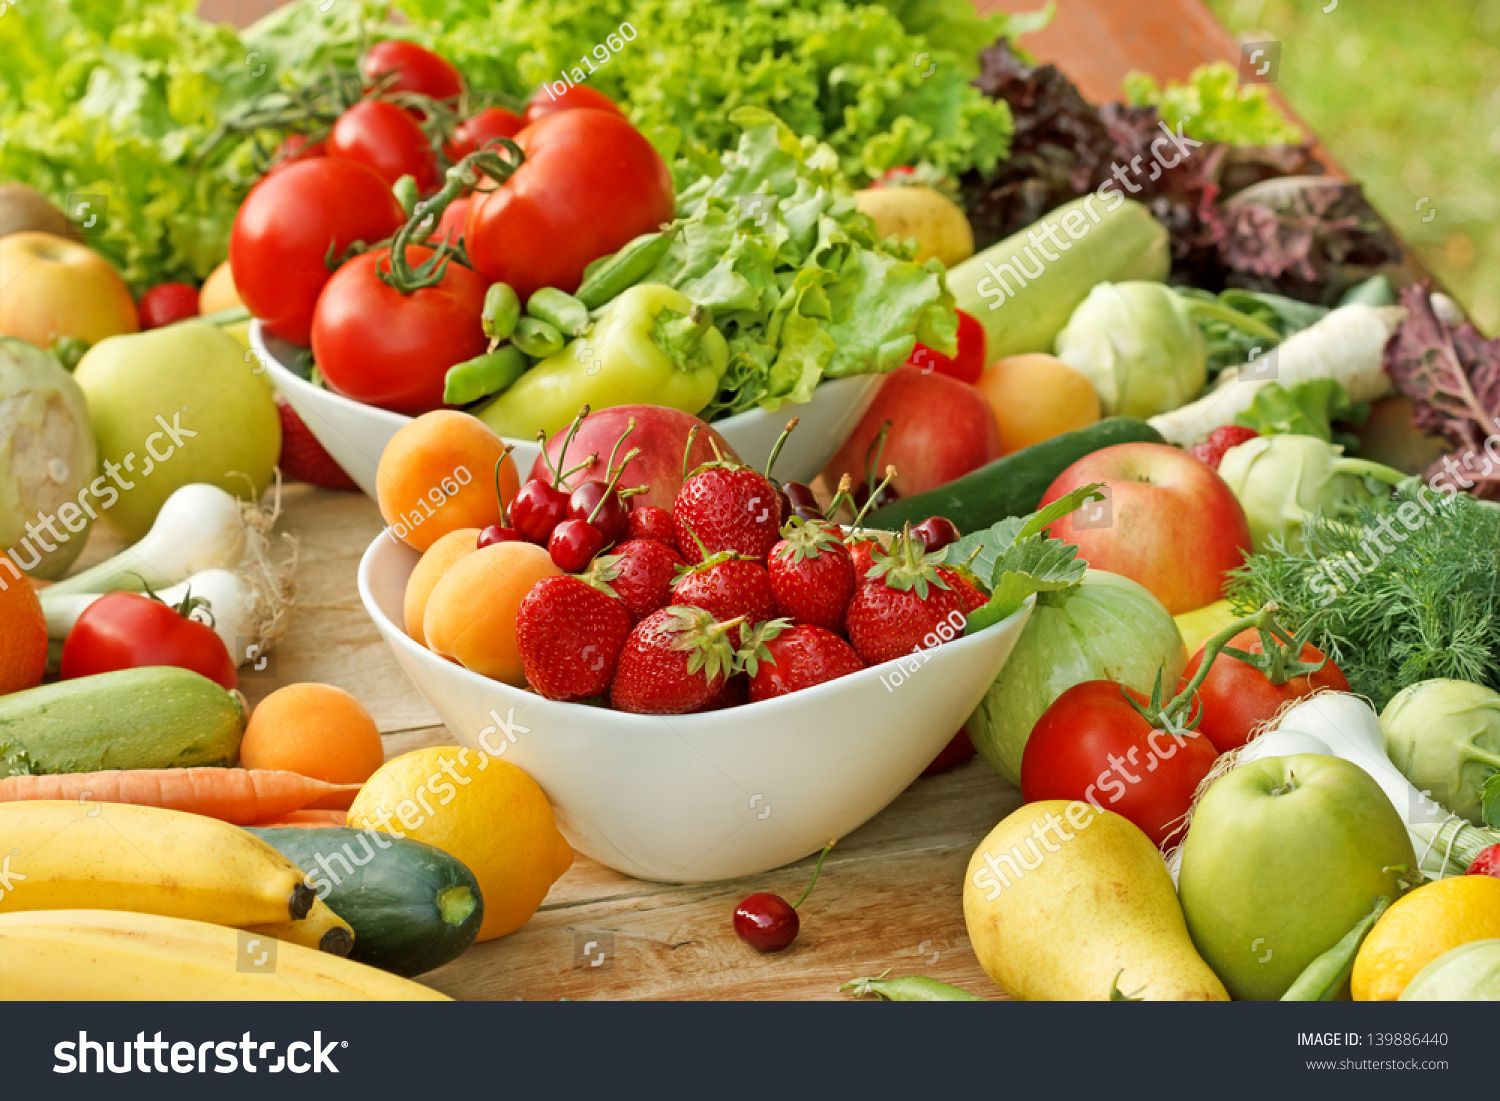 Fresh Fruit And Vegetable - Healthy Food Stock Photo ...